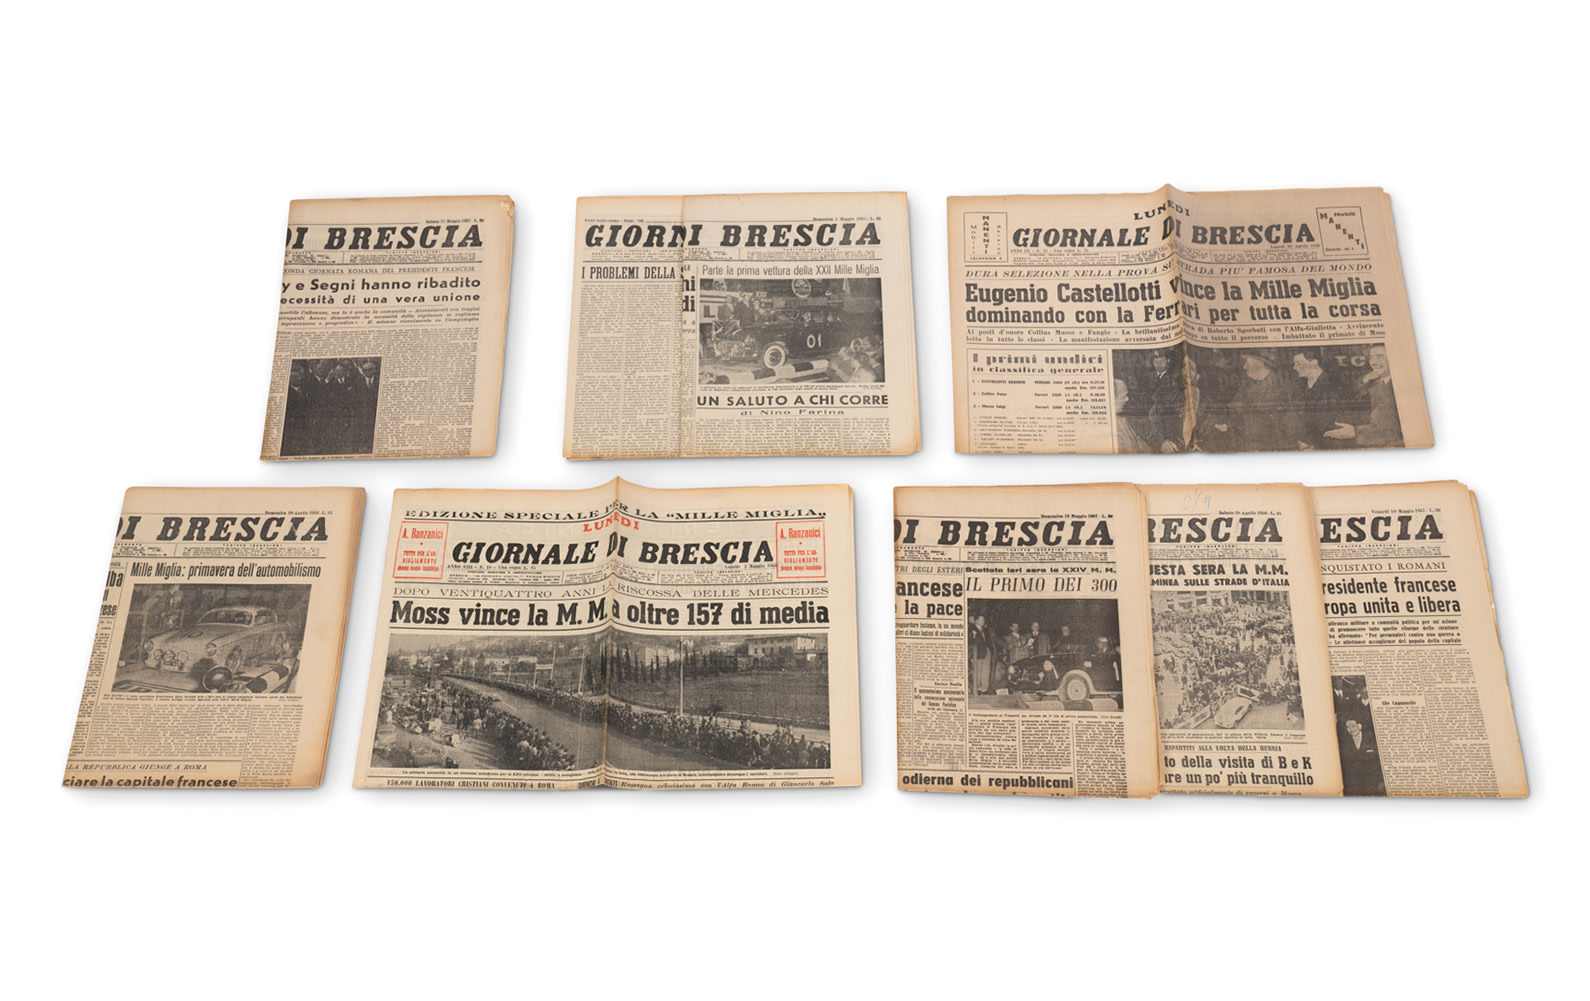 Assorted Giornale Di Brescia Newspapers, c. 1955-1957, Documenting the Running of the Mille Miglia